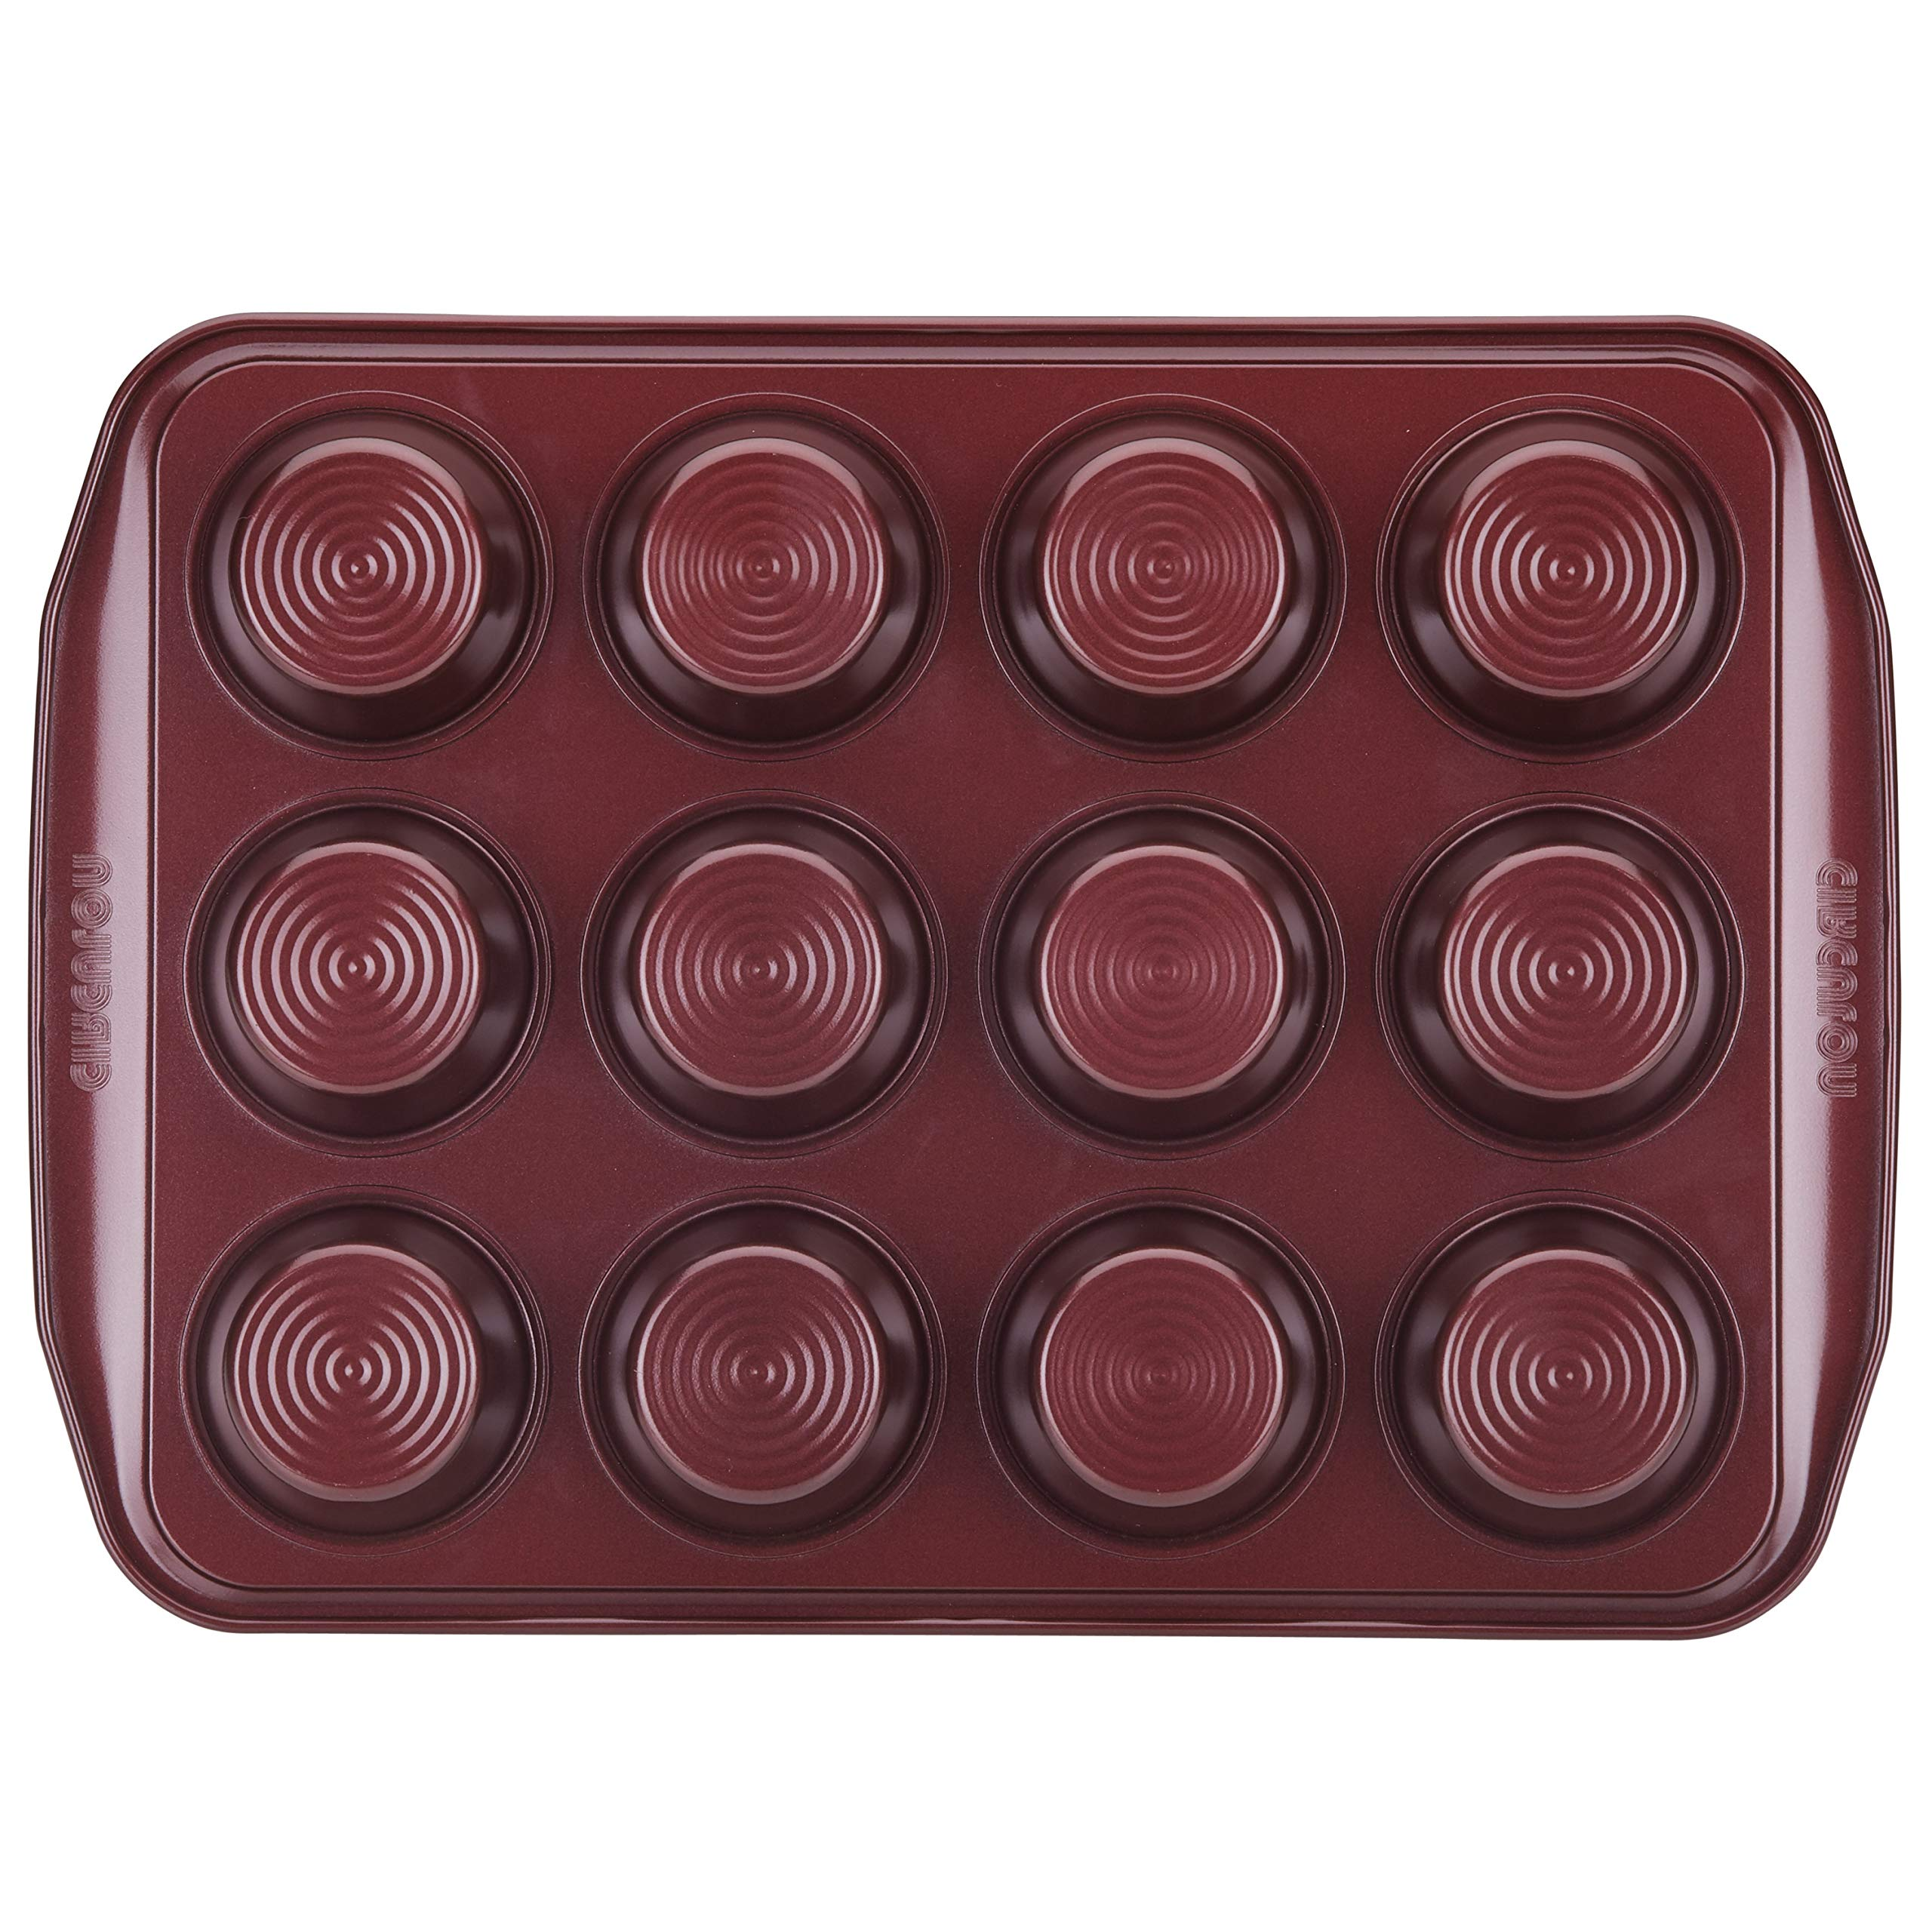 Circulon 47882 12-Cup Steel Muffin Pan, Merlot by Circulon (Image #1)